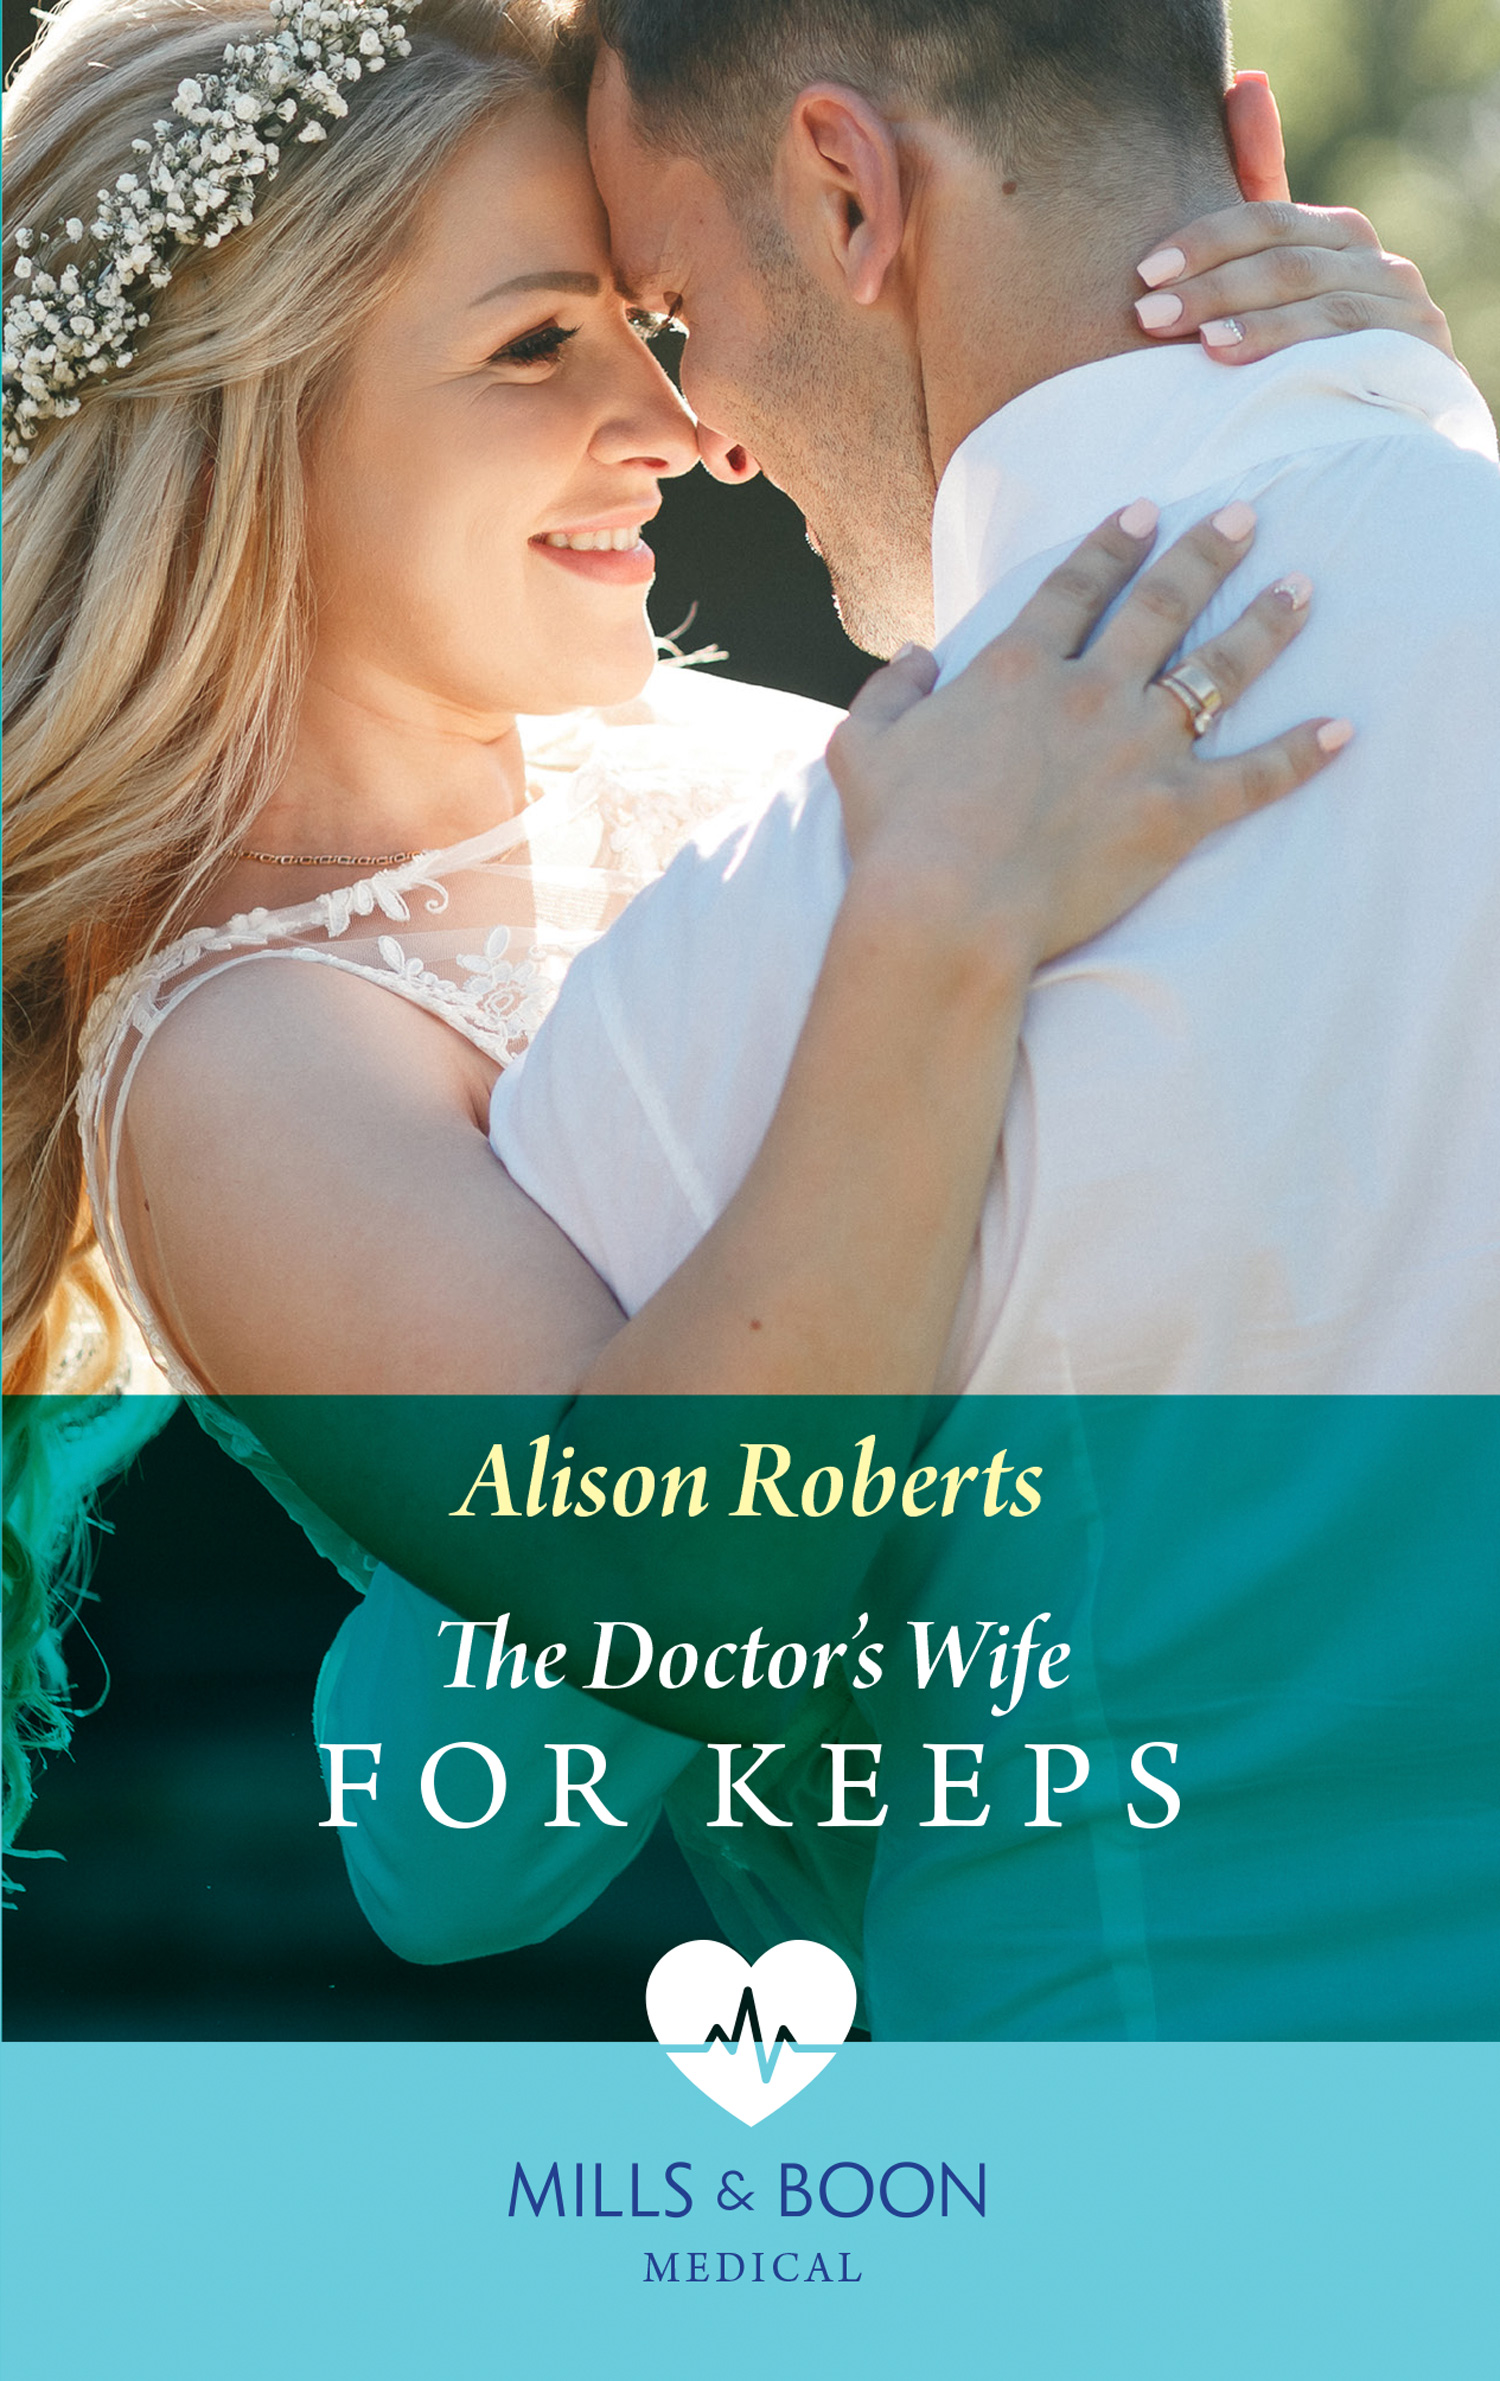 The Doctor's Wife For Keeps